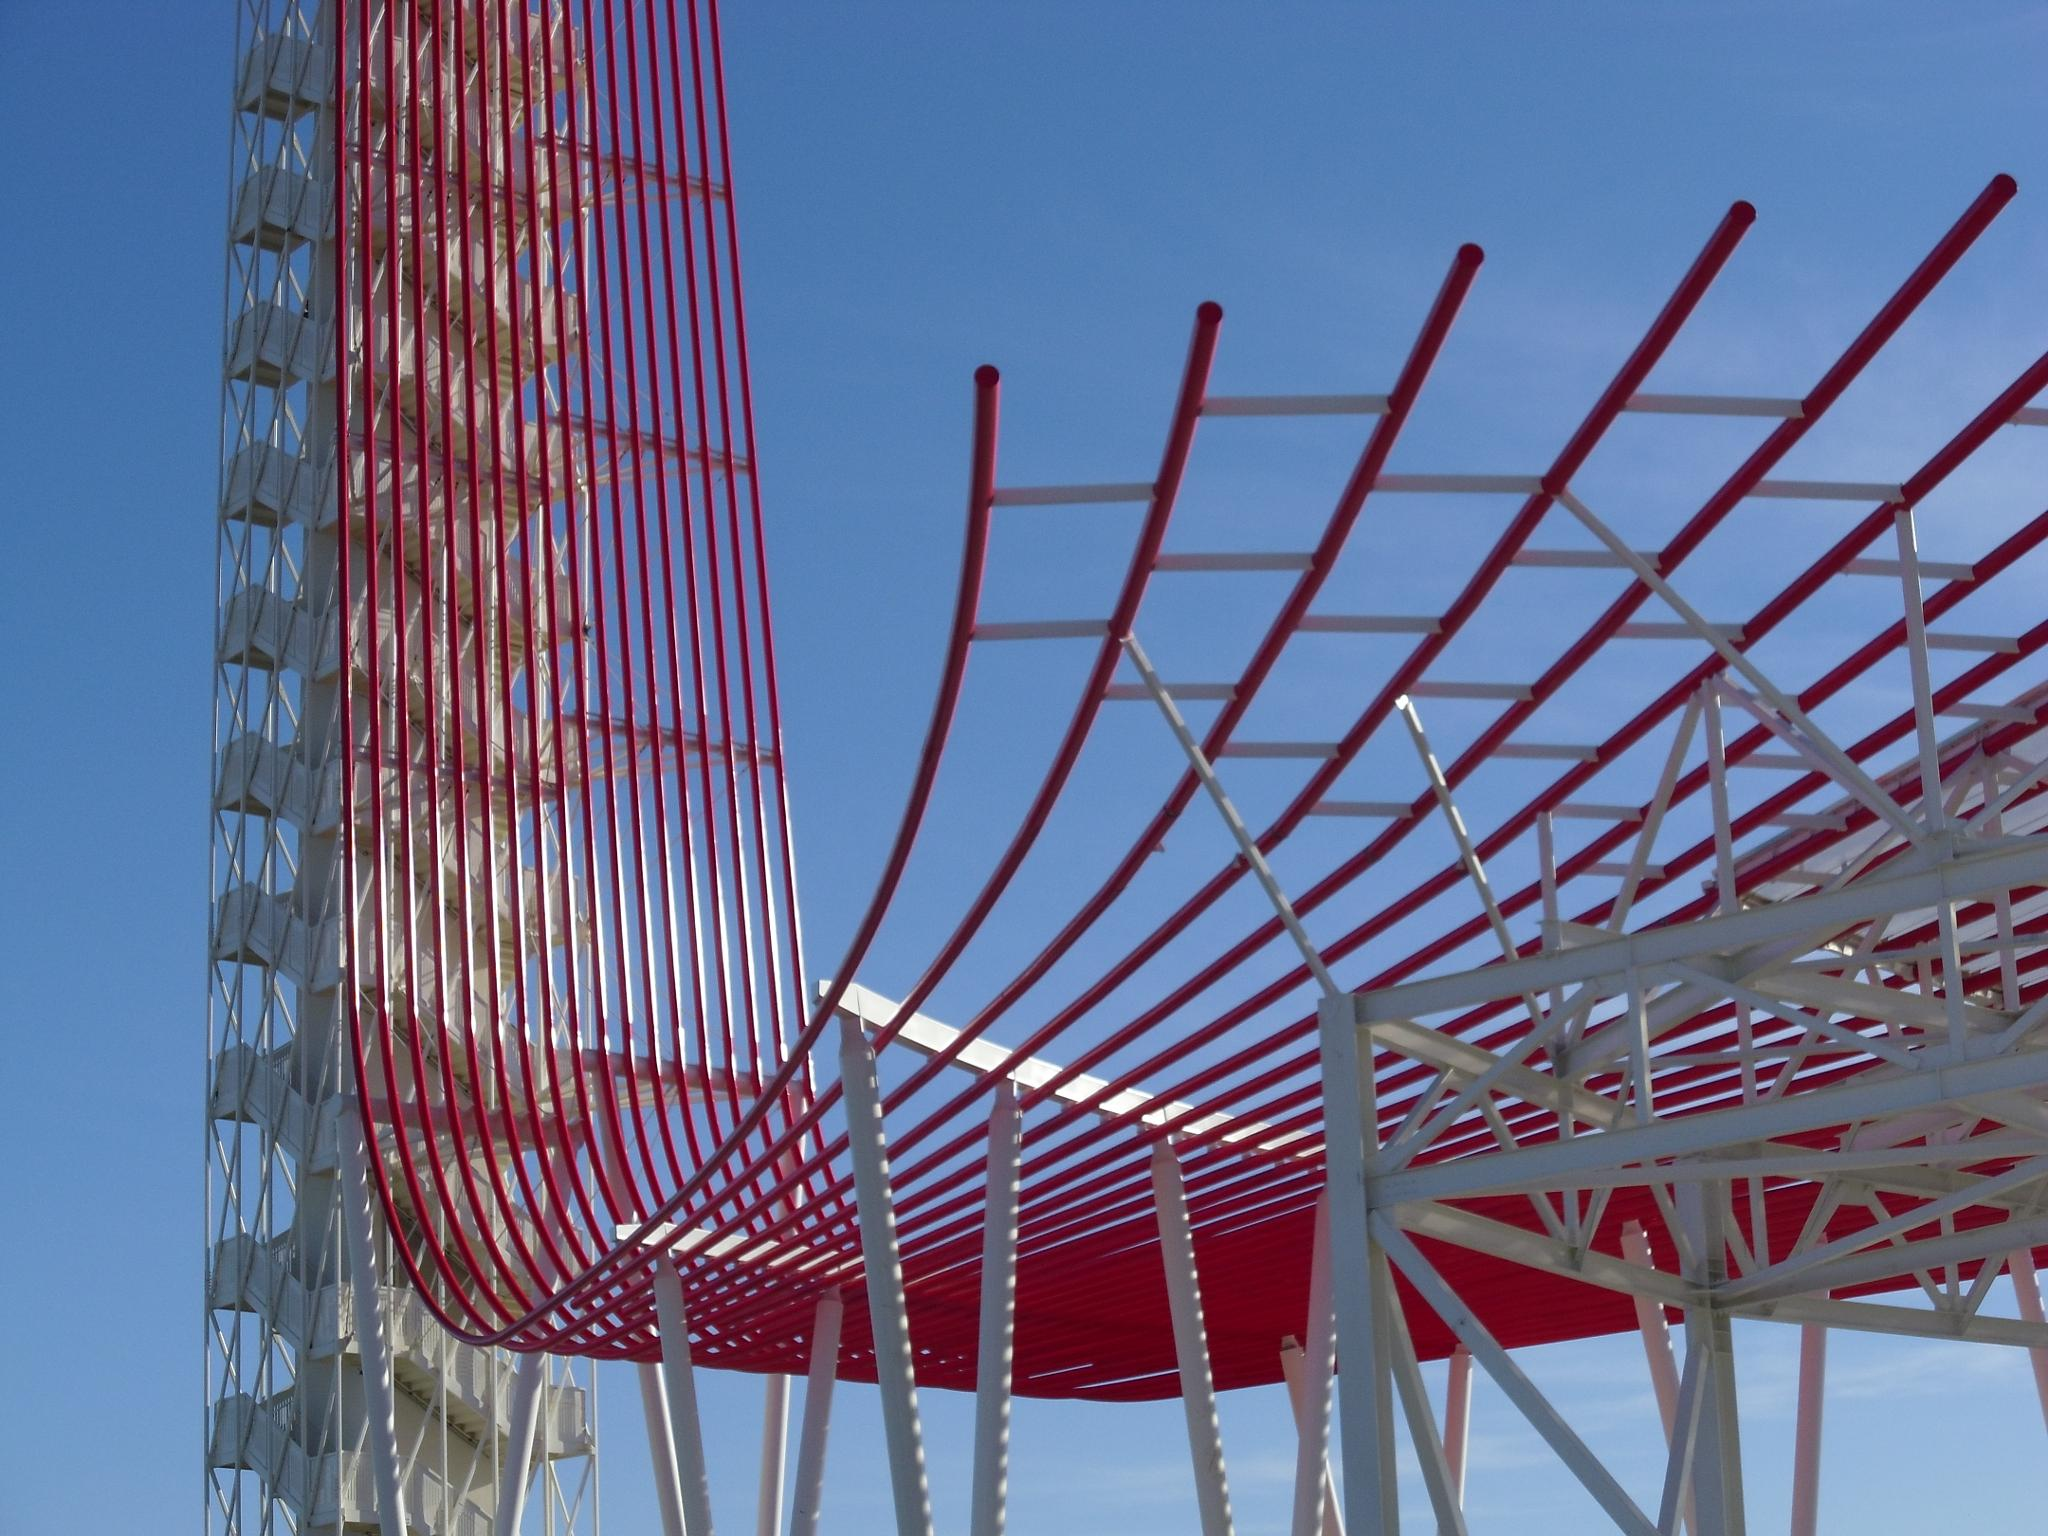 Cota Tower Curves by richard.valentine.54